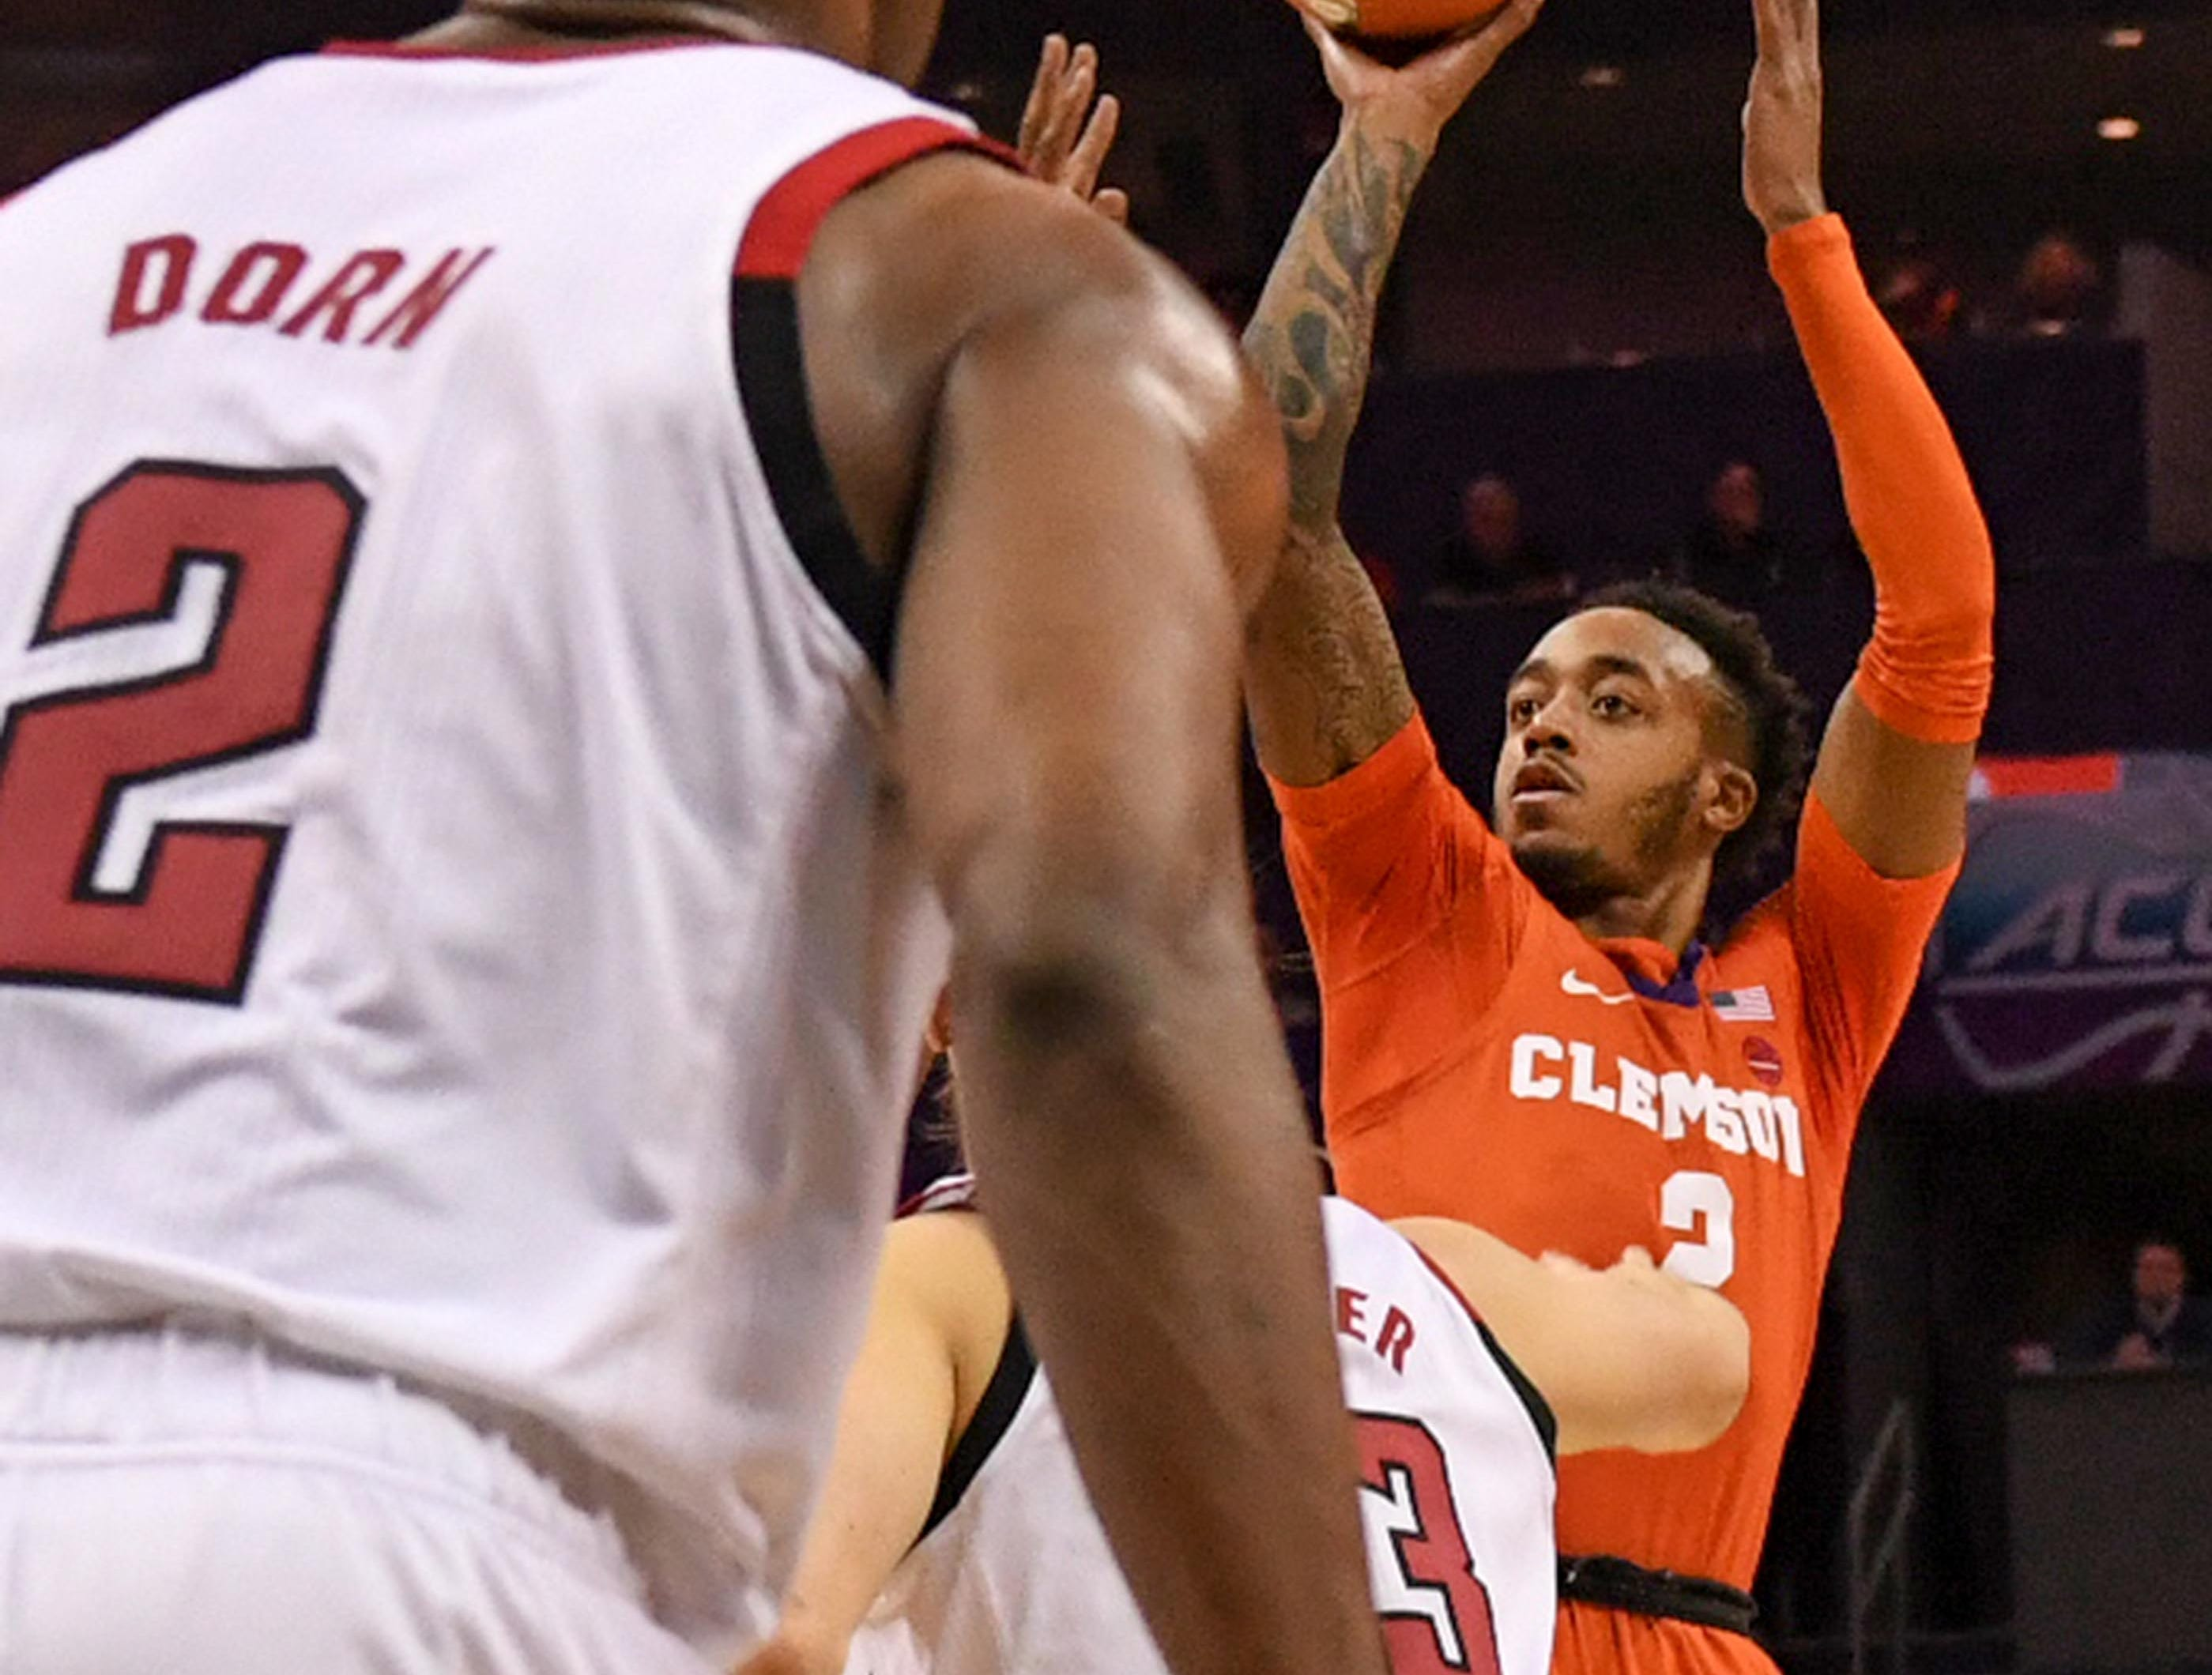 Clemson guard Marcquise Reed (2) shoots near N.C. State guard Torin Dorn(2) during the first half at the Spectrum Center in Charlotte, N.C. Tuesday, March 12, 2019.